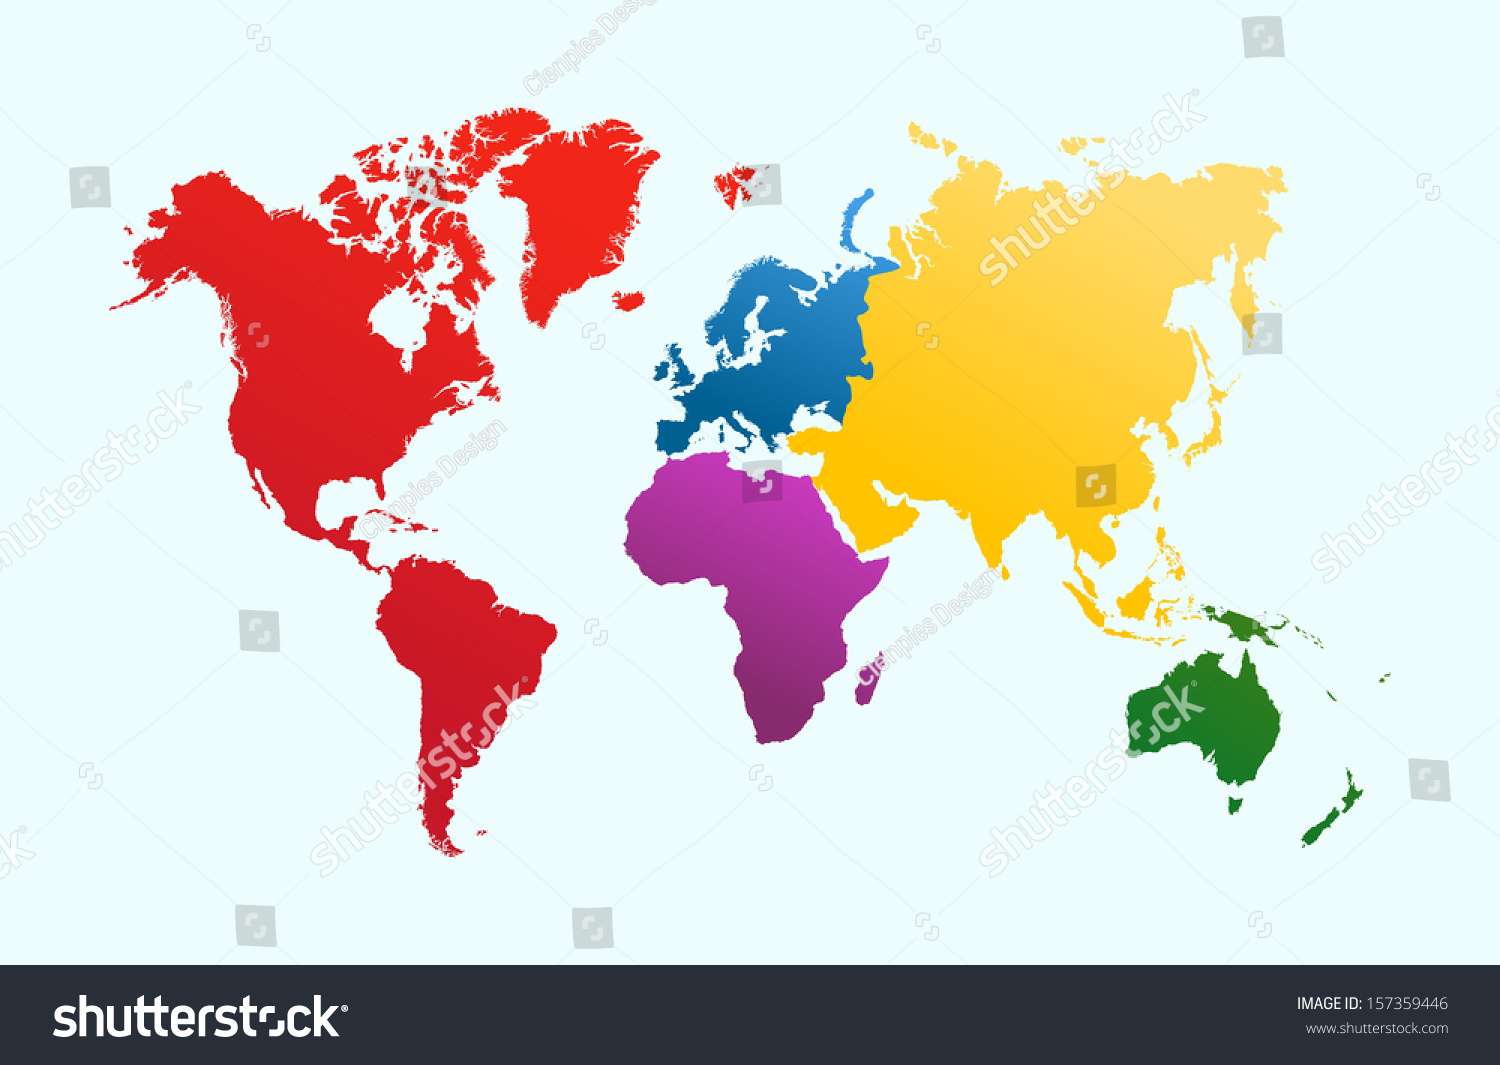 World map colorful continents atlas eps 10 stock vector 157359446 world map with colorful continents atlas eps10 vector file organized in layers for easy editing gumiabroncs Choice Image